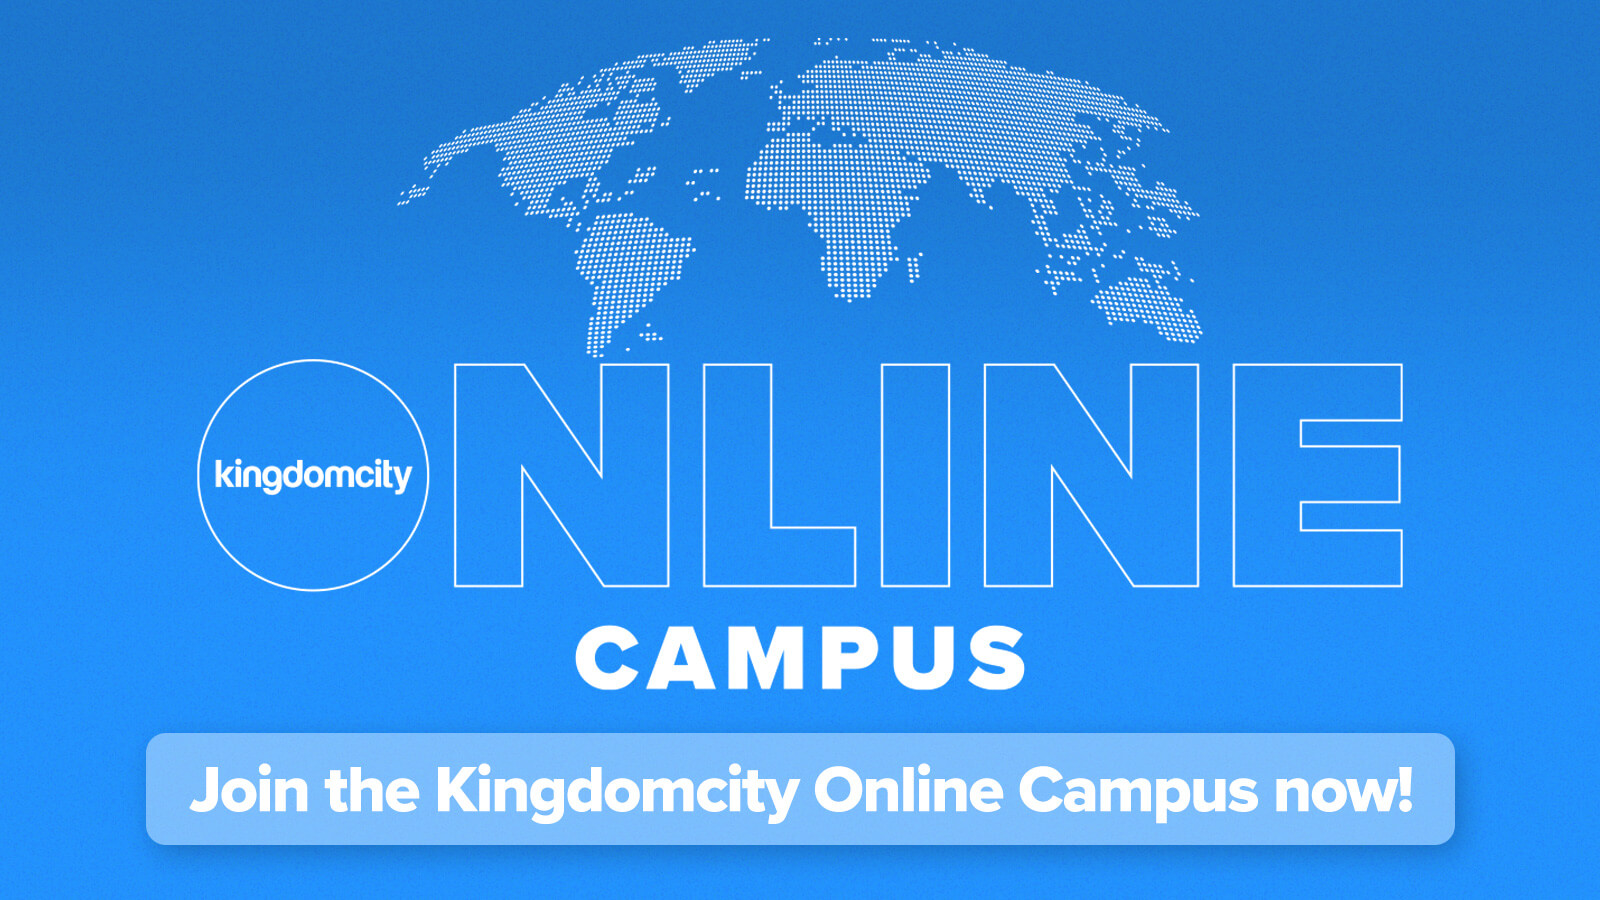 Join the Kingdomcity Online Campus now!